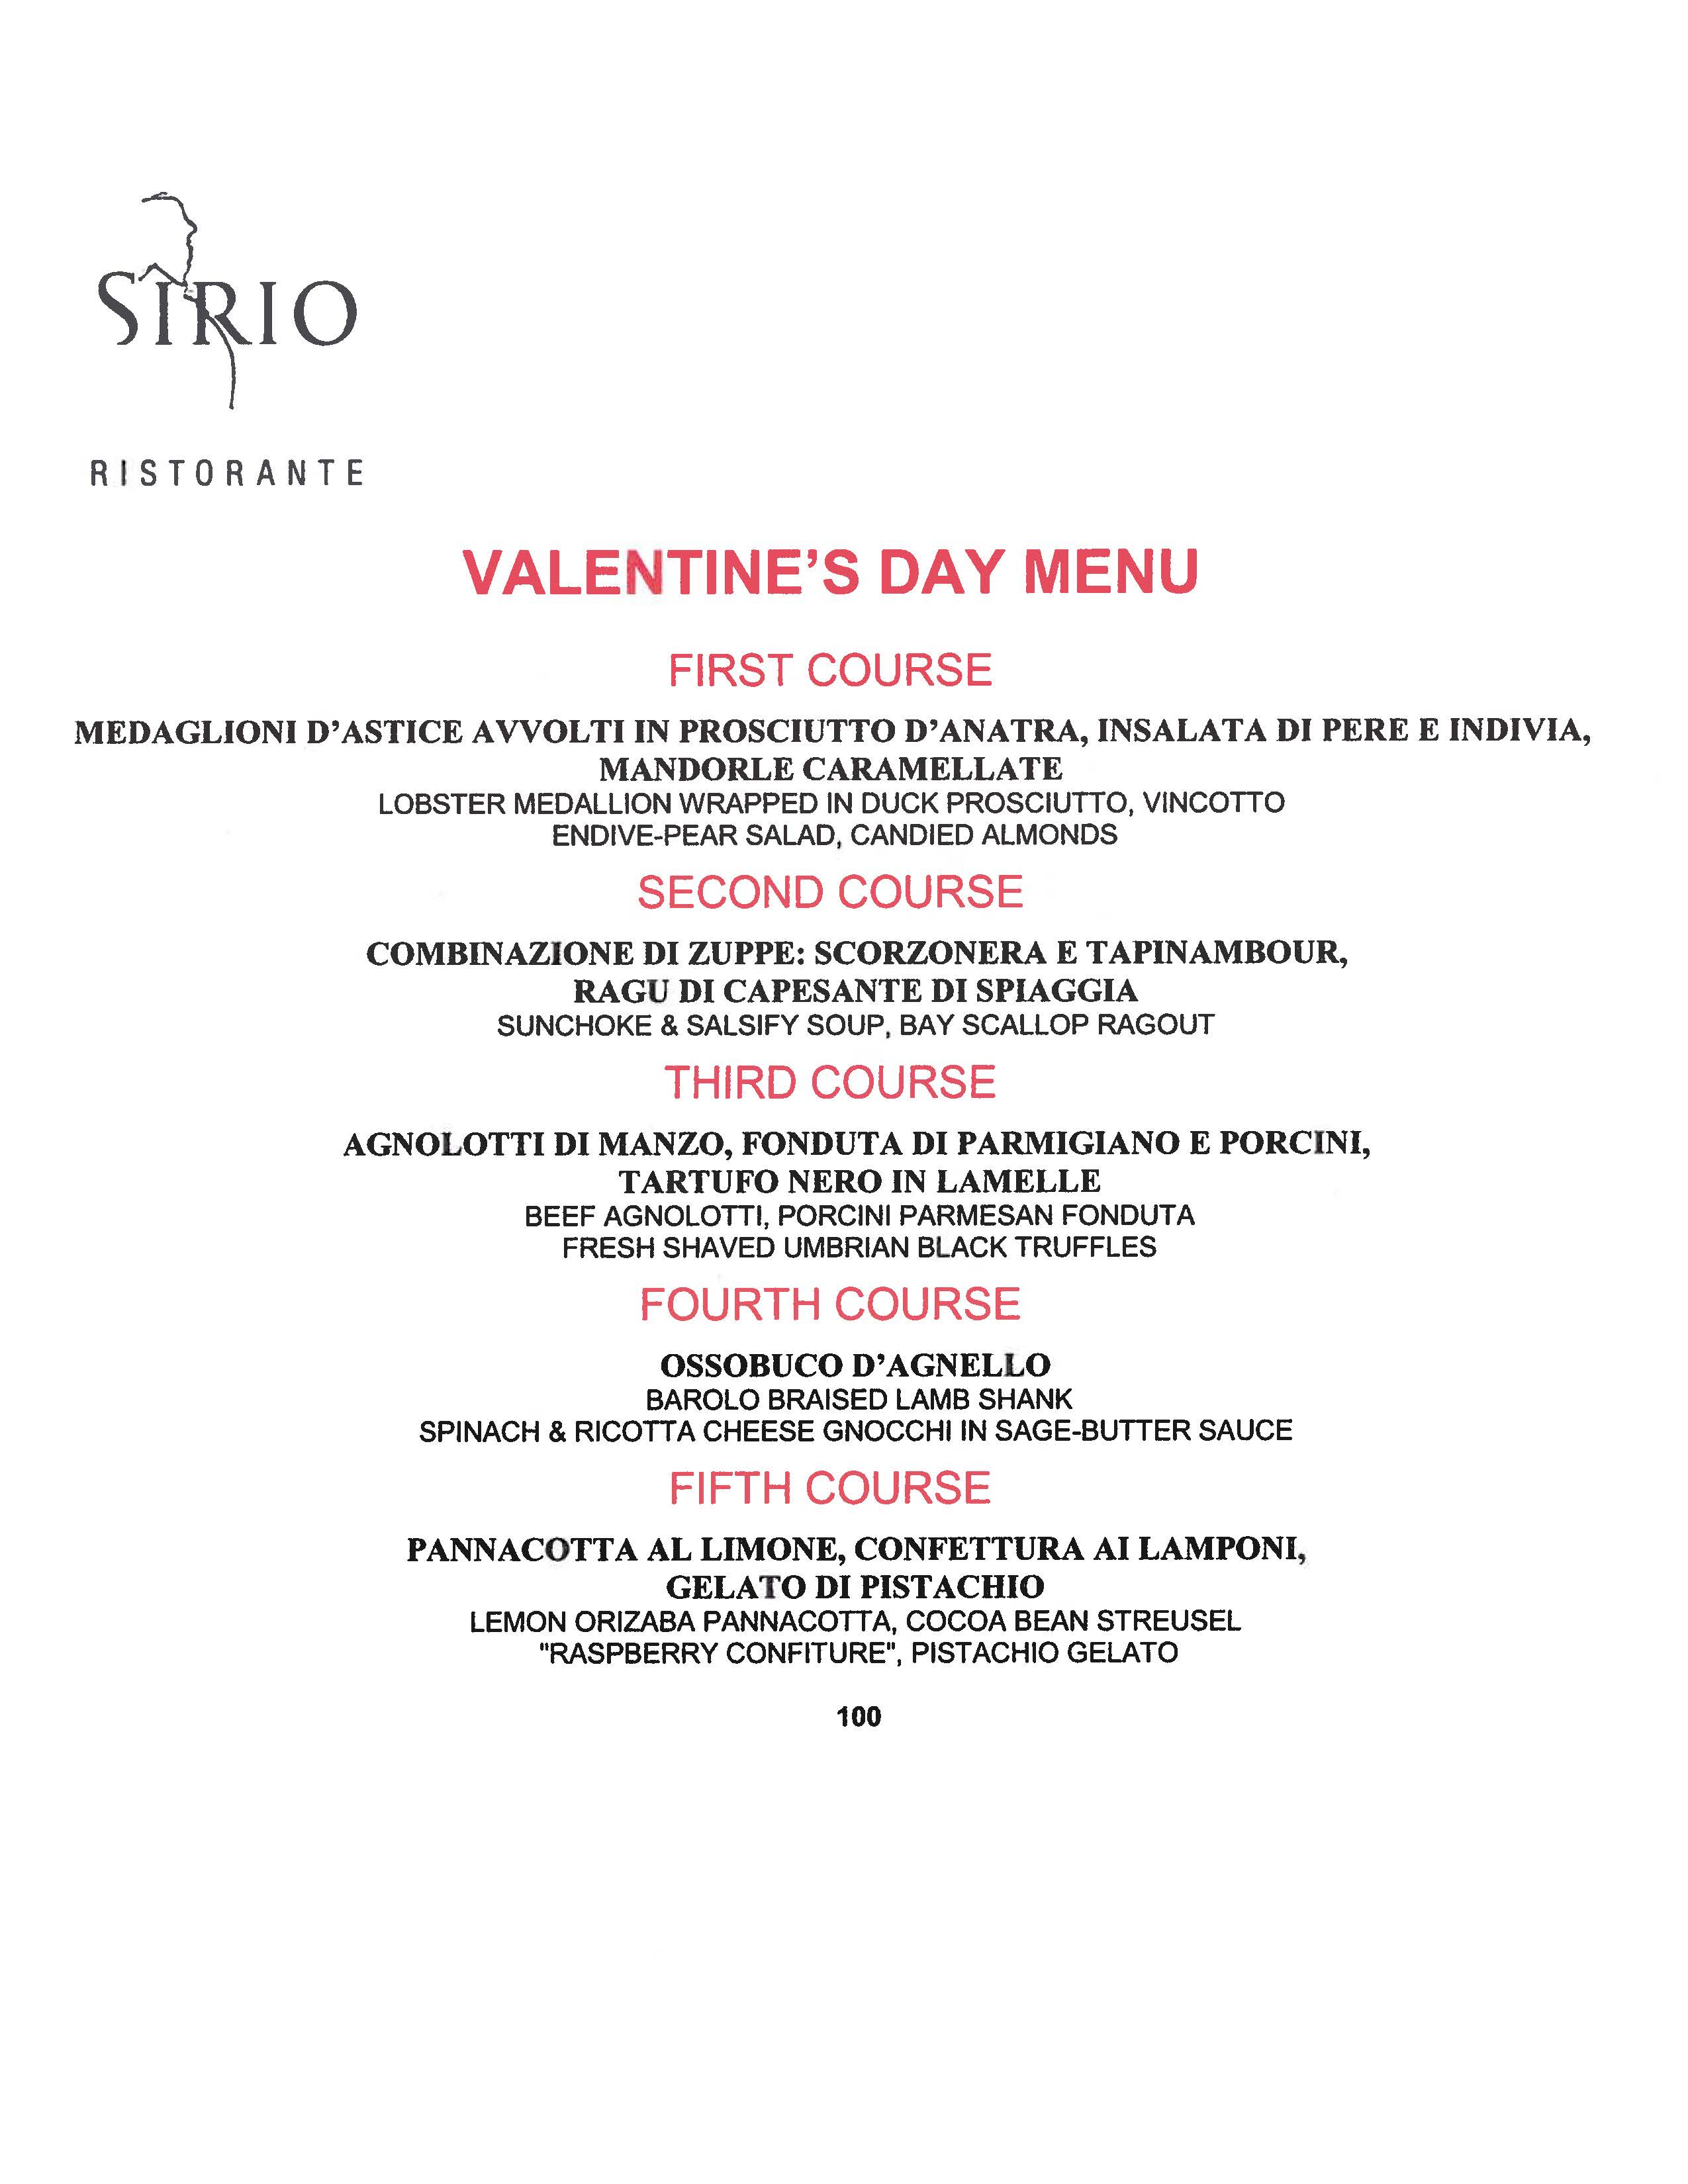 Sirio Ristorante